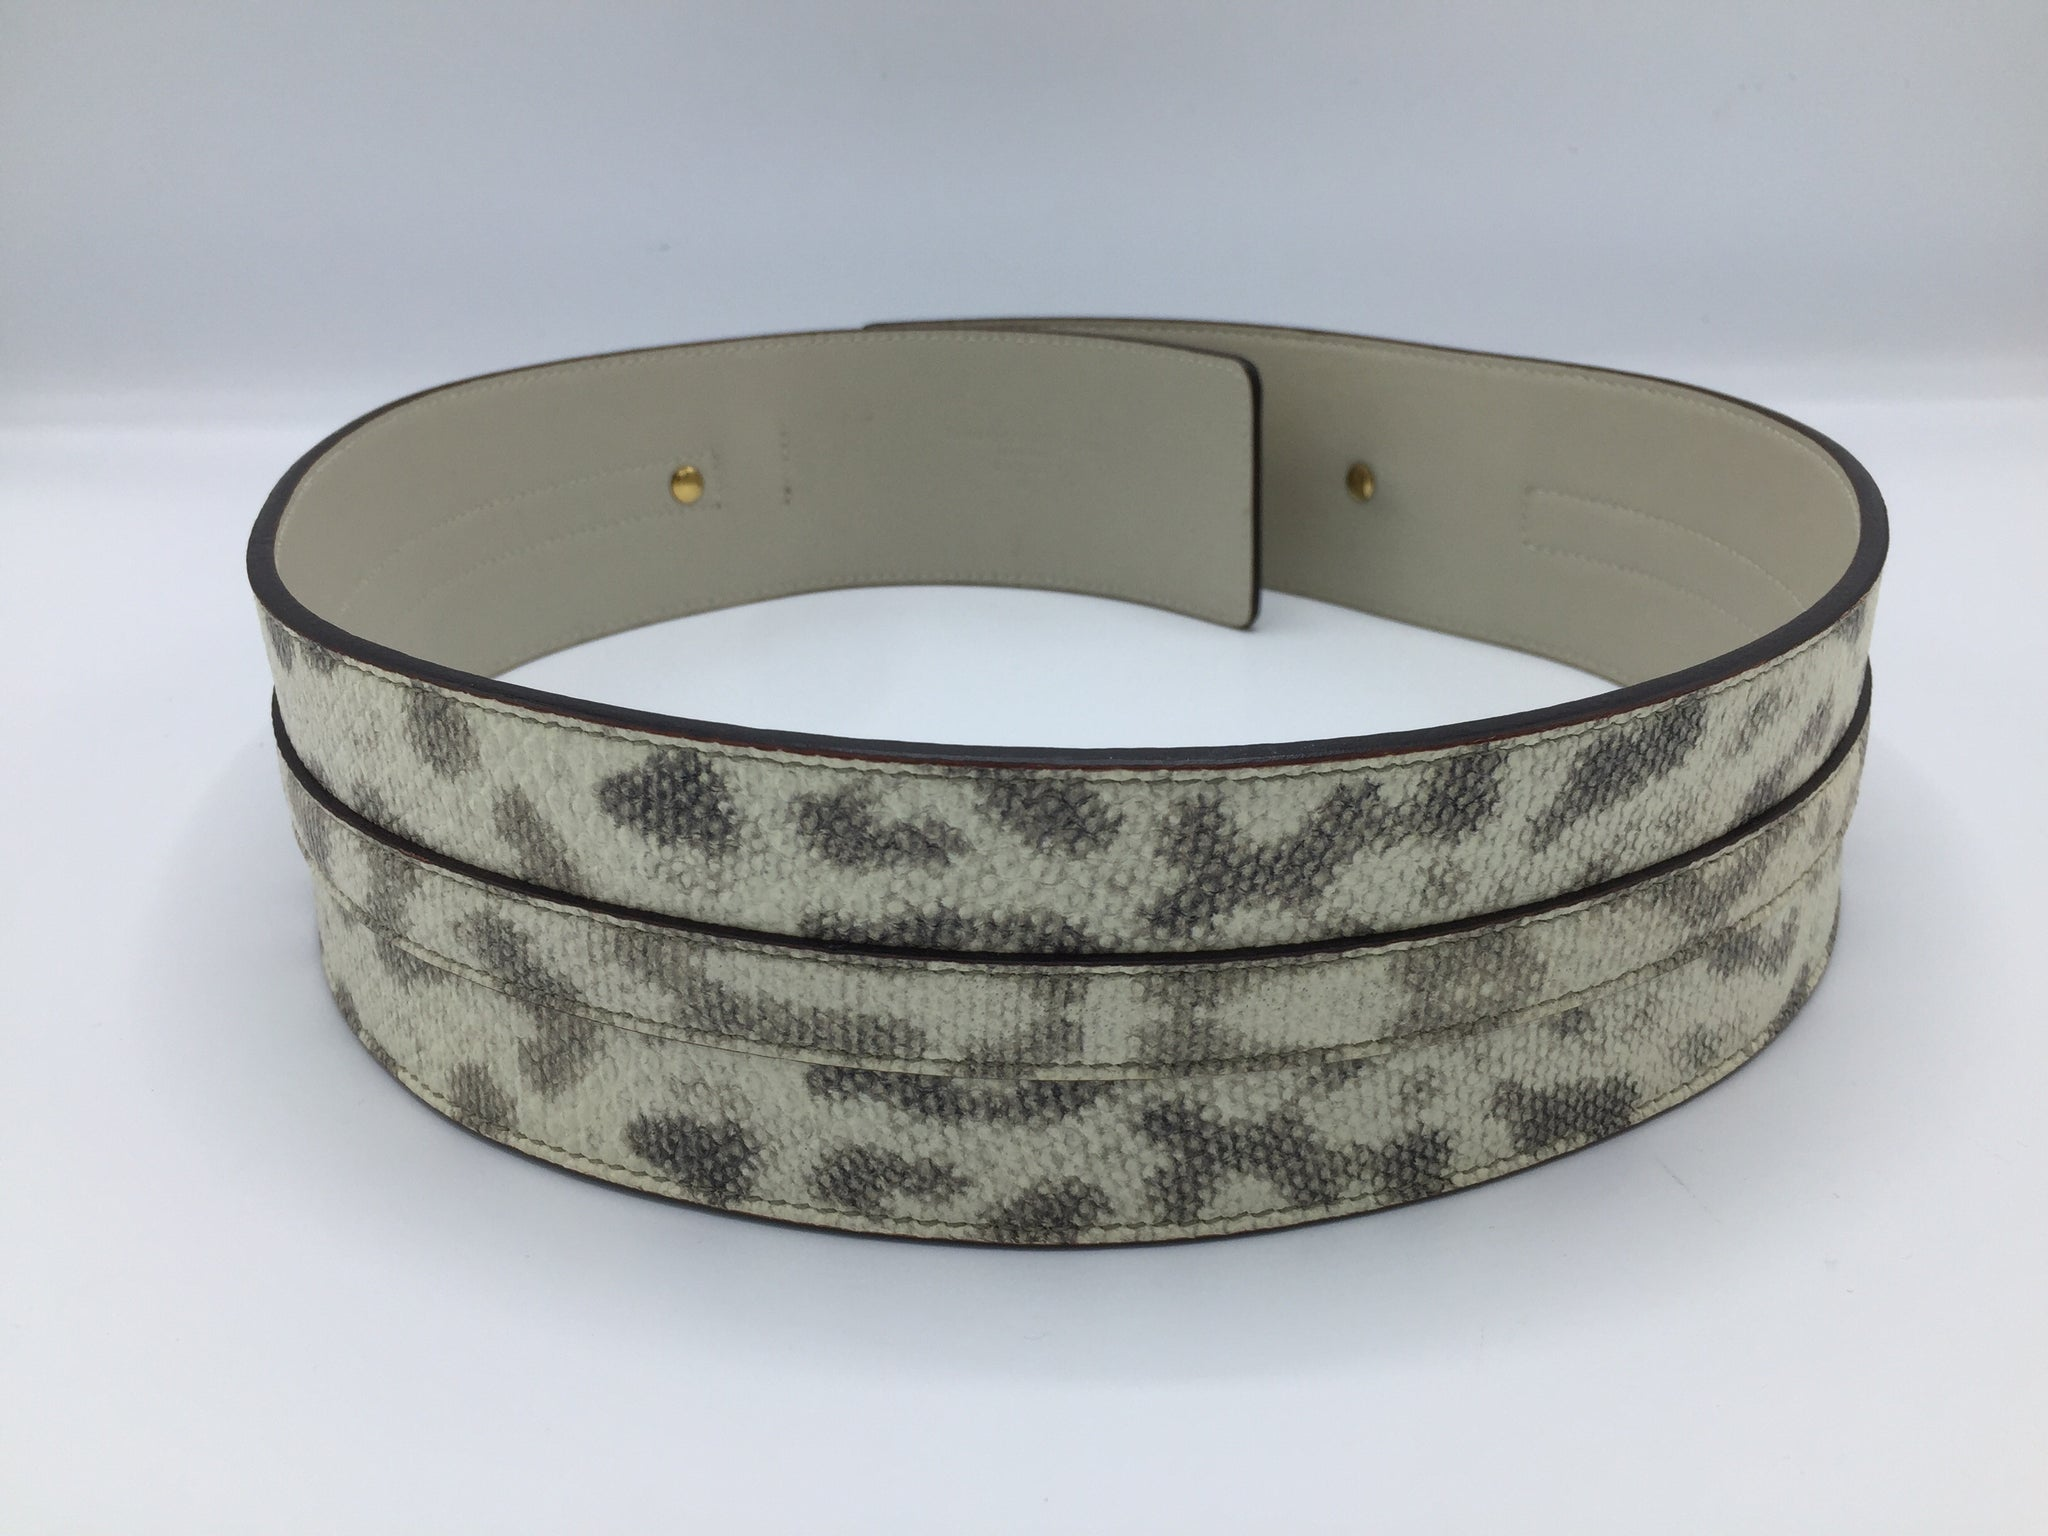 Gucci belt - Iconics Preloved Luxury